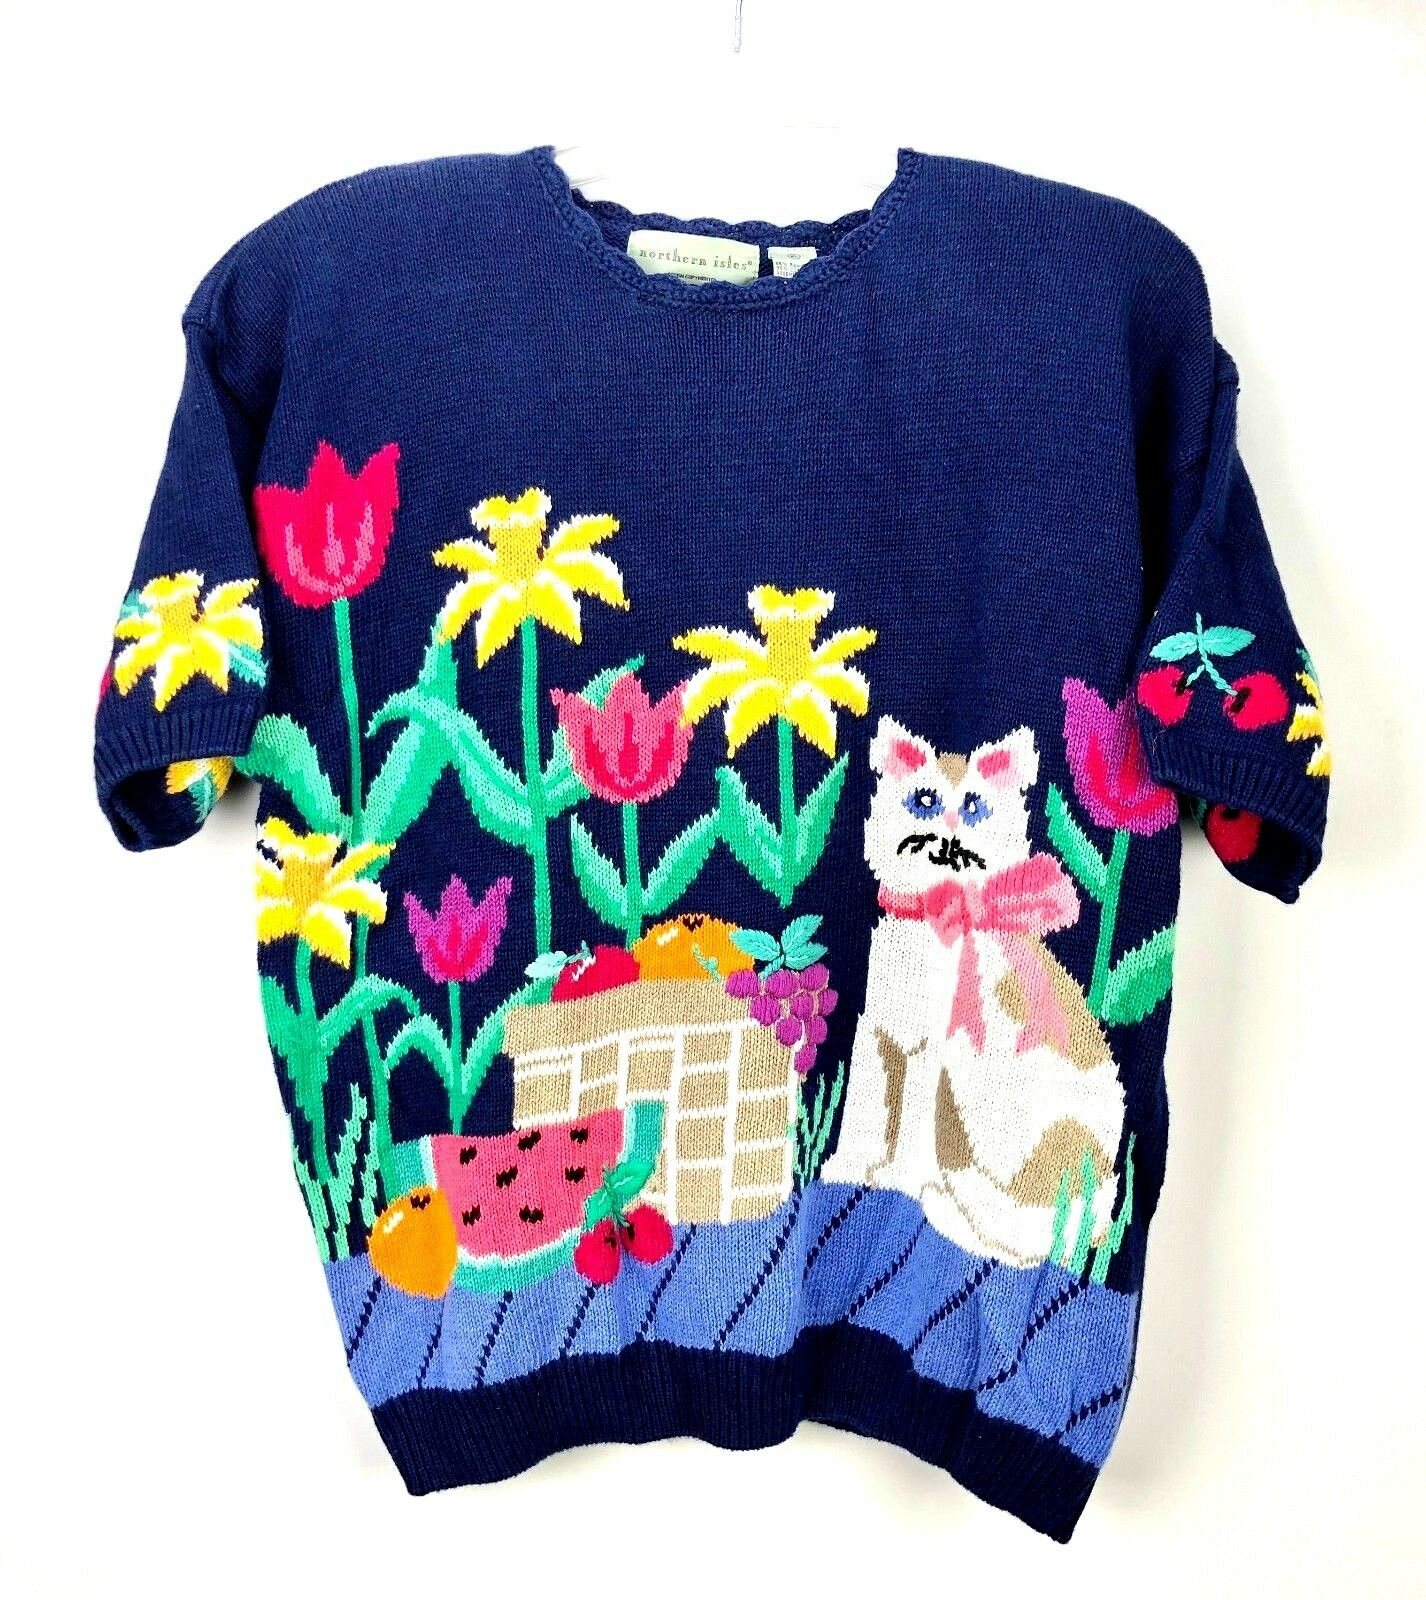 VTG NWT Northern Isles Sweater Womens XL XL XL Kitty Cat Person Bowl Of Fruit Floral d159f0